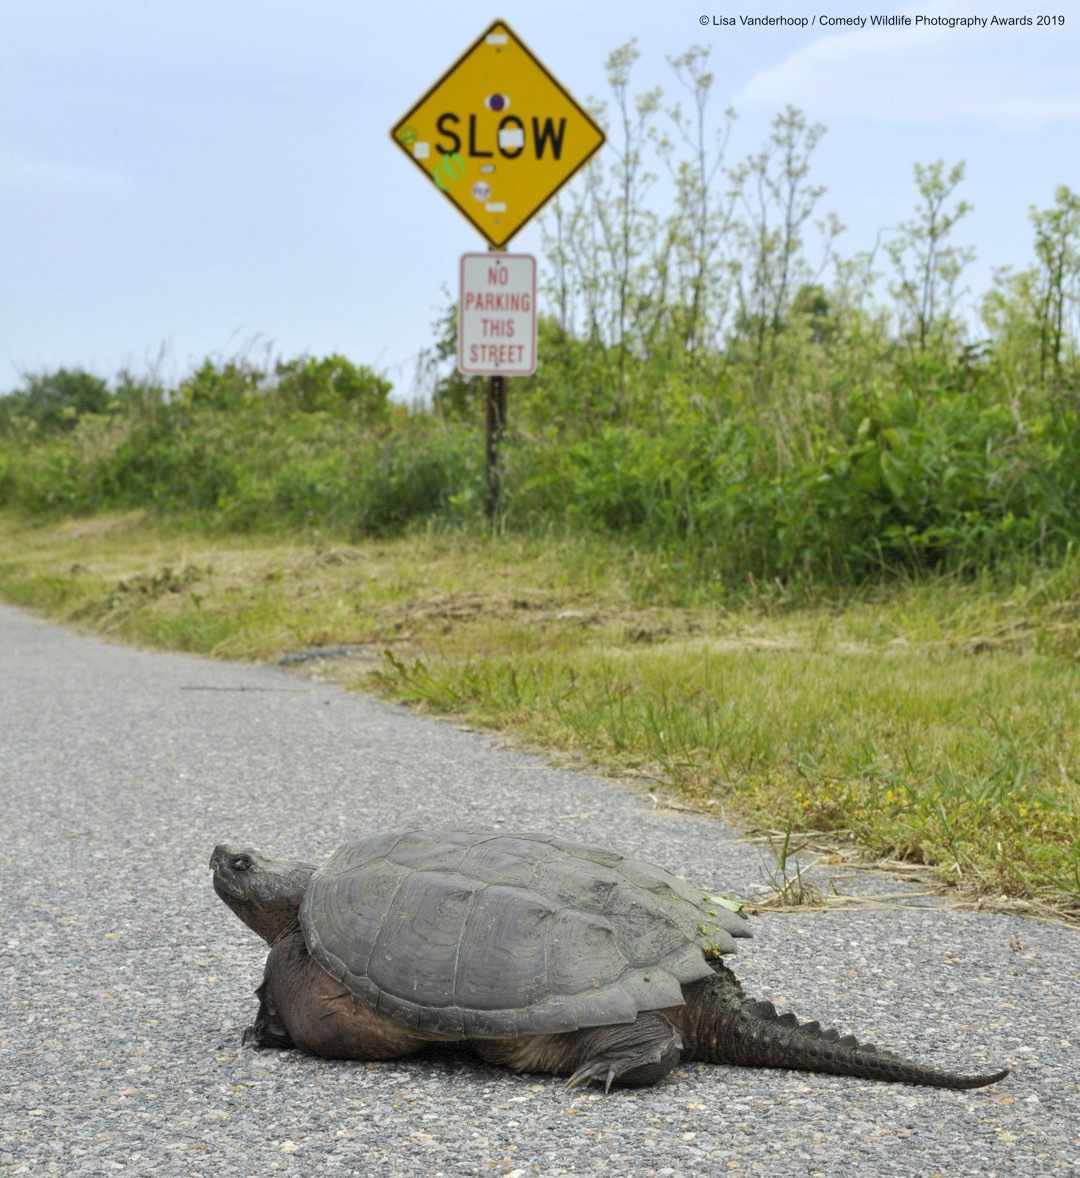 Snarling snappin' in the slow lane © Lisa Vanderhoop / Comedy Wildlife Photo Awards 2019